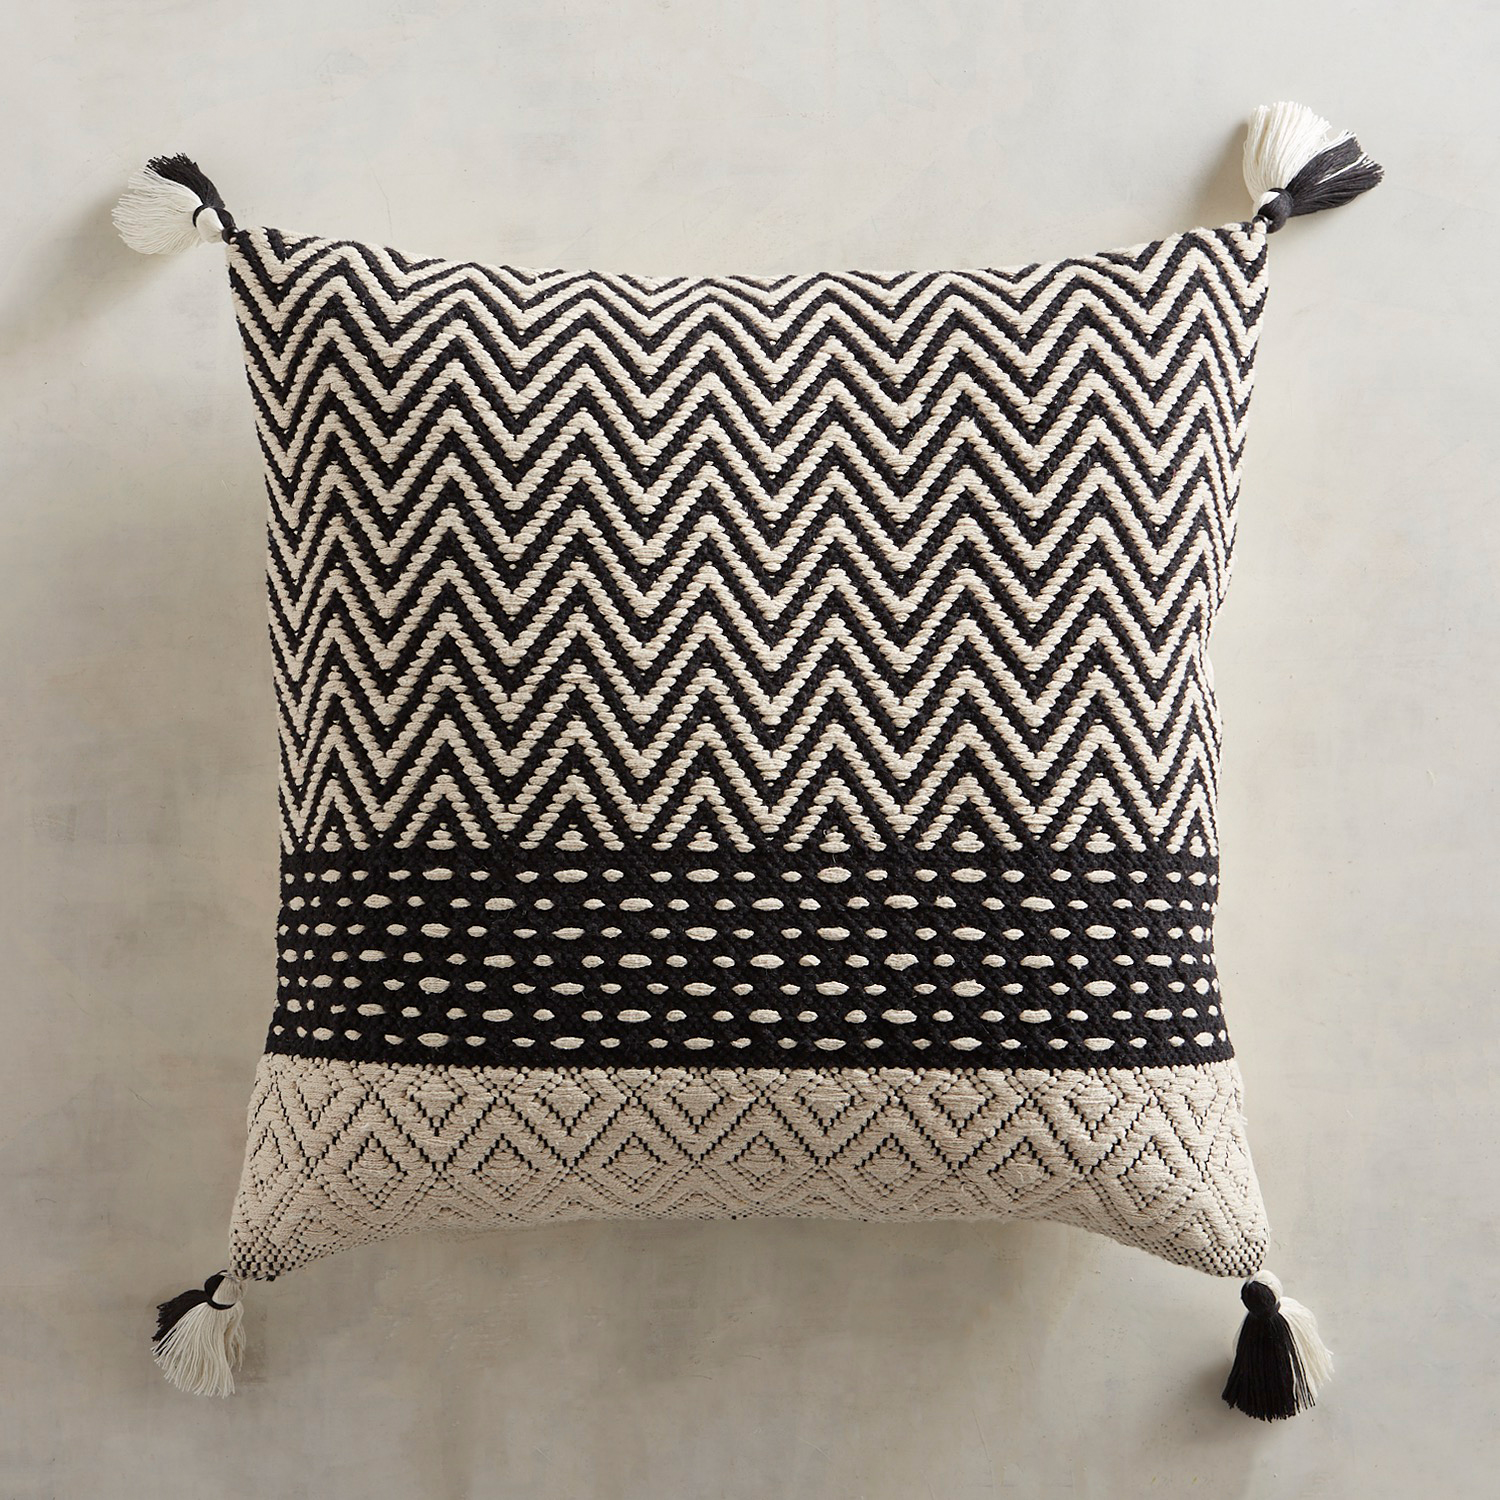 Patterned Black & White Pillow with Tassels